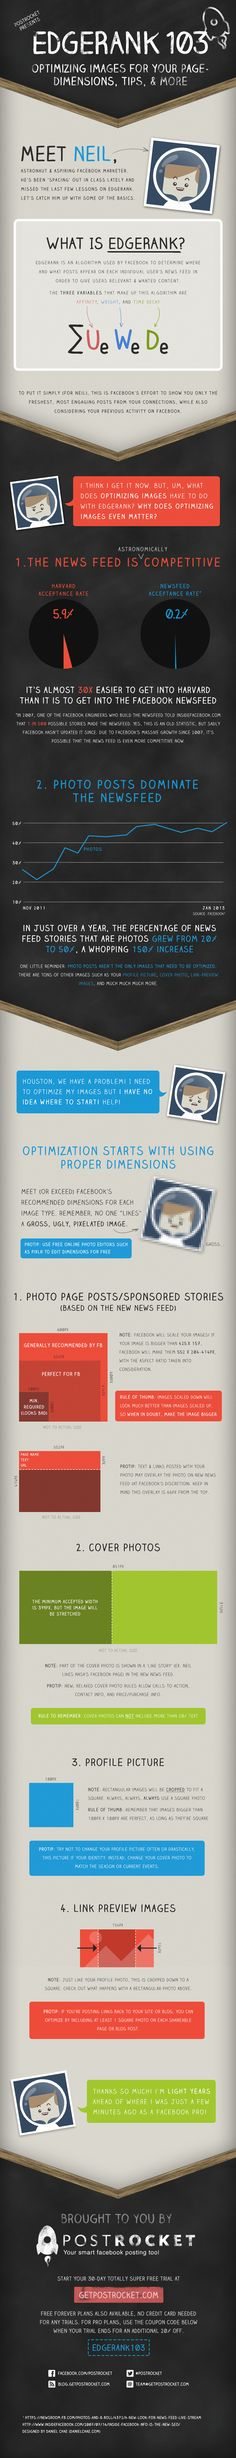 Optimaze your images to increase your Facebook Edgerank | Ezlearning AcademyEzlearning Academy